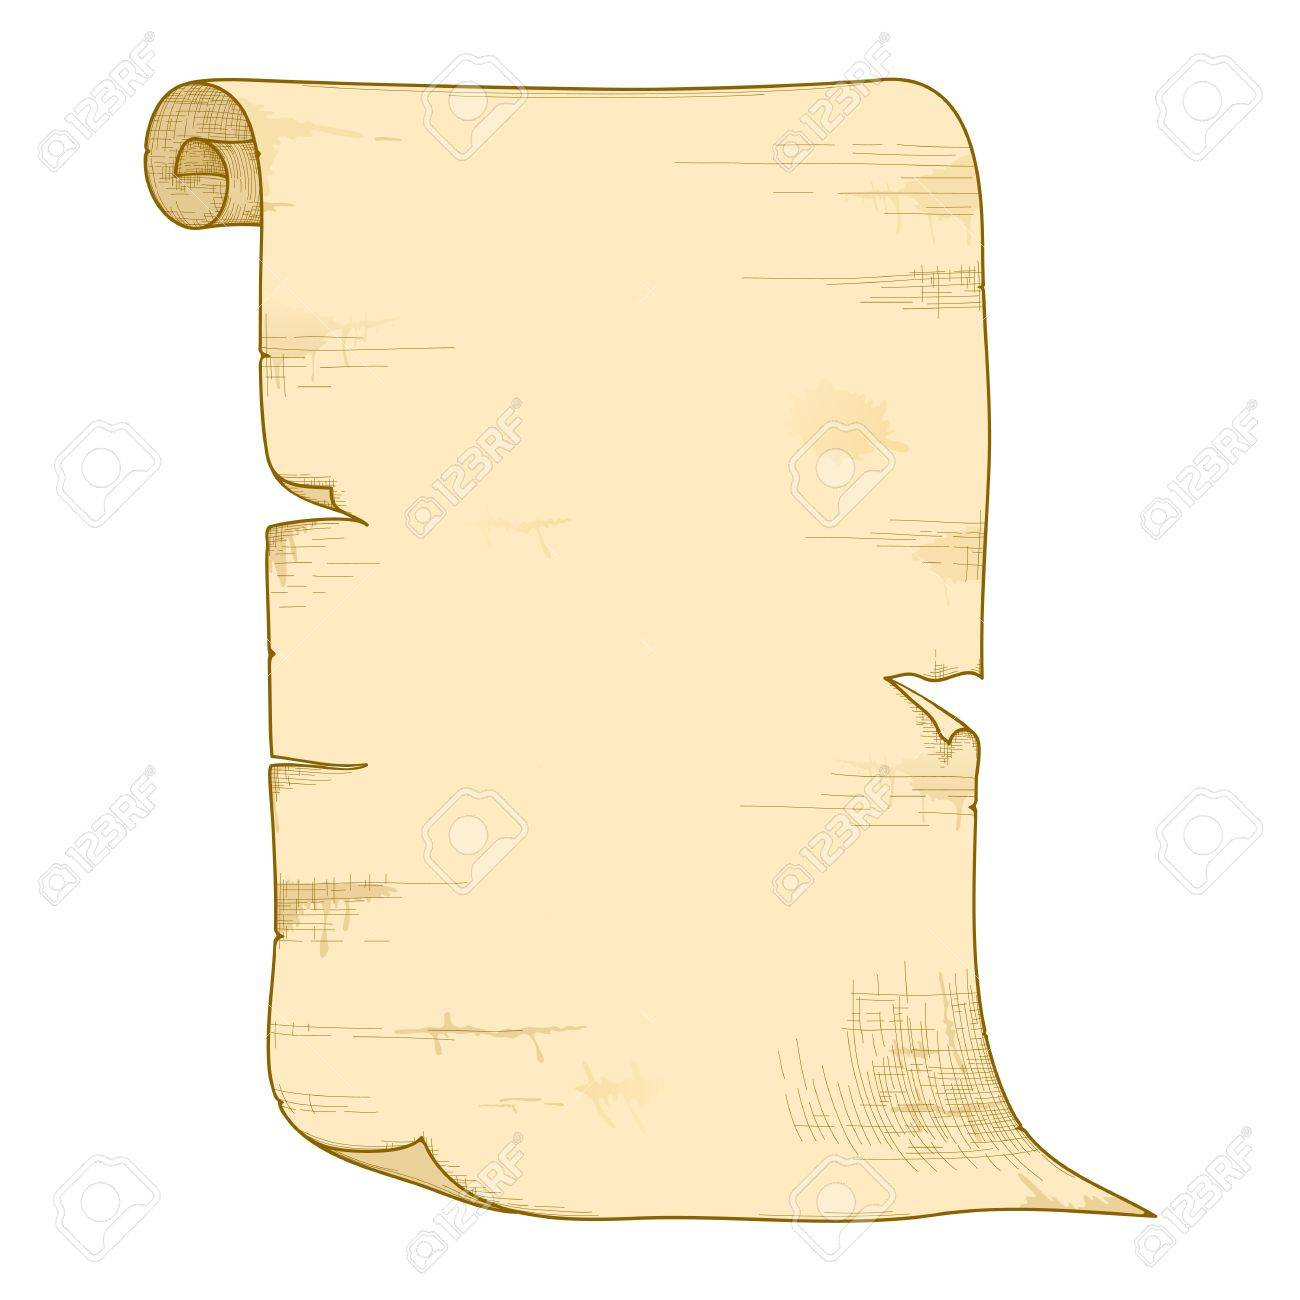 illustration of old paper roll isolated on white background. Stock Vector - 13331417